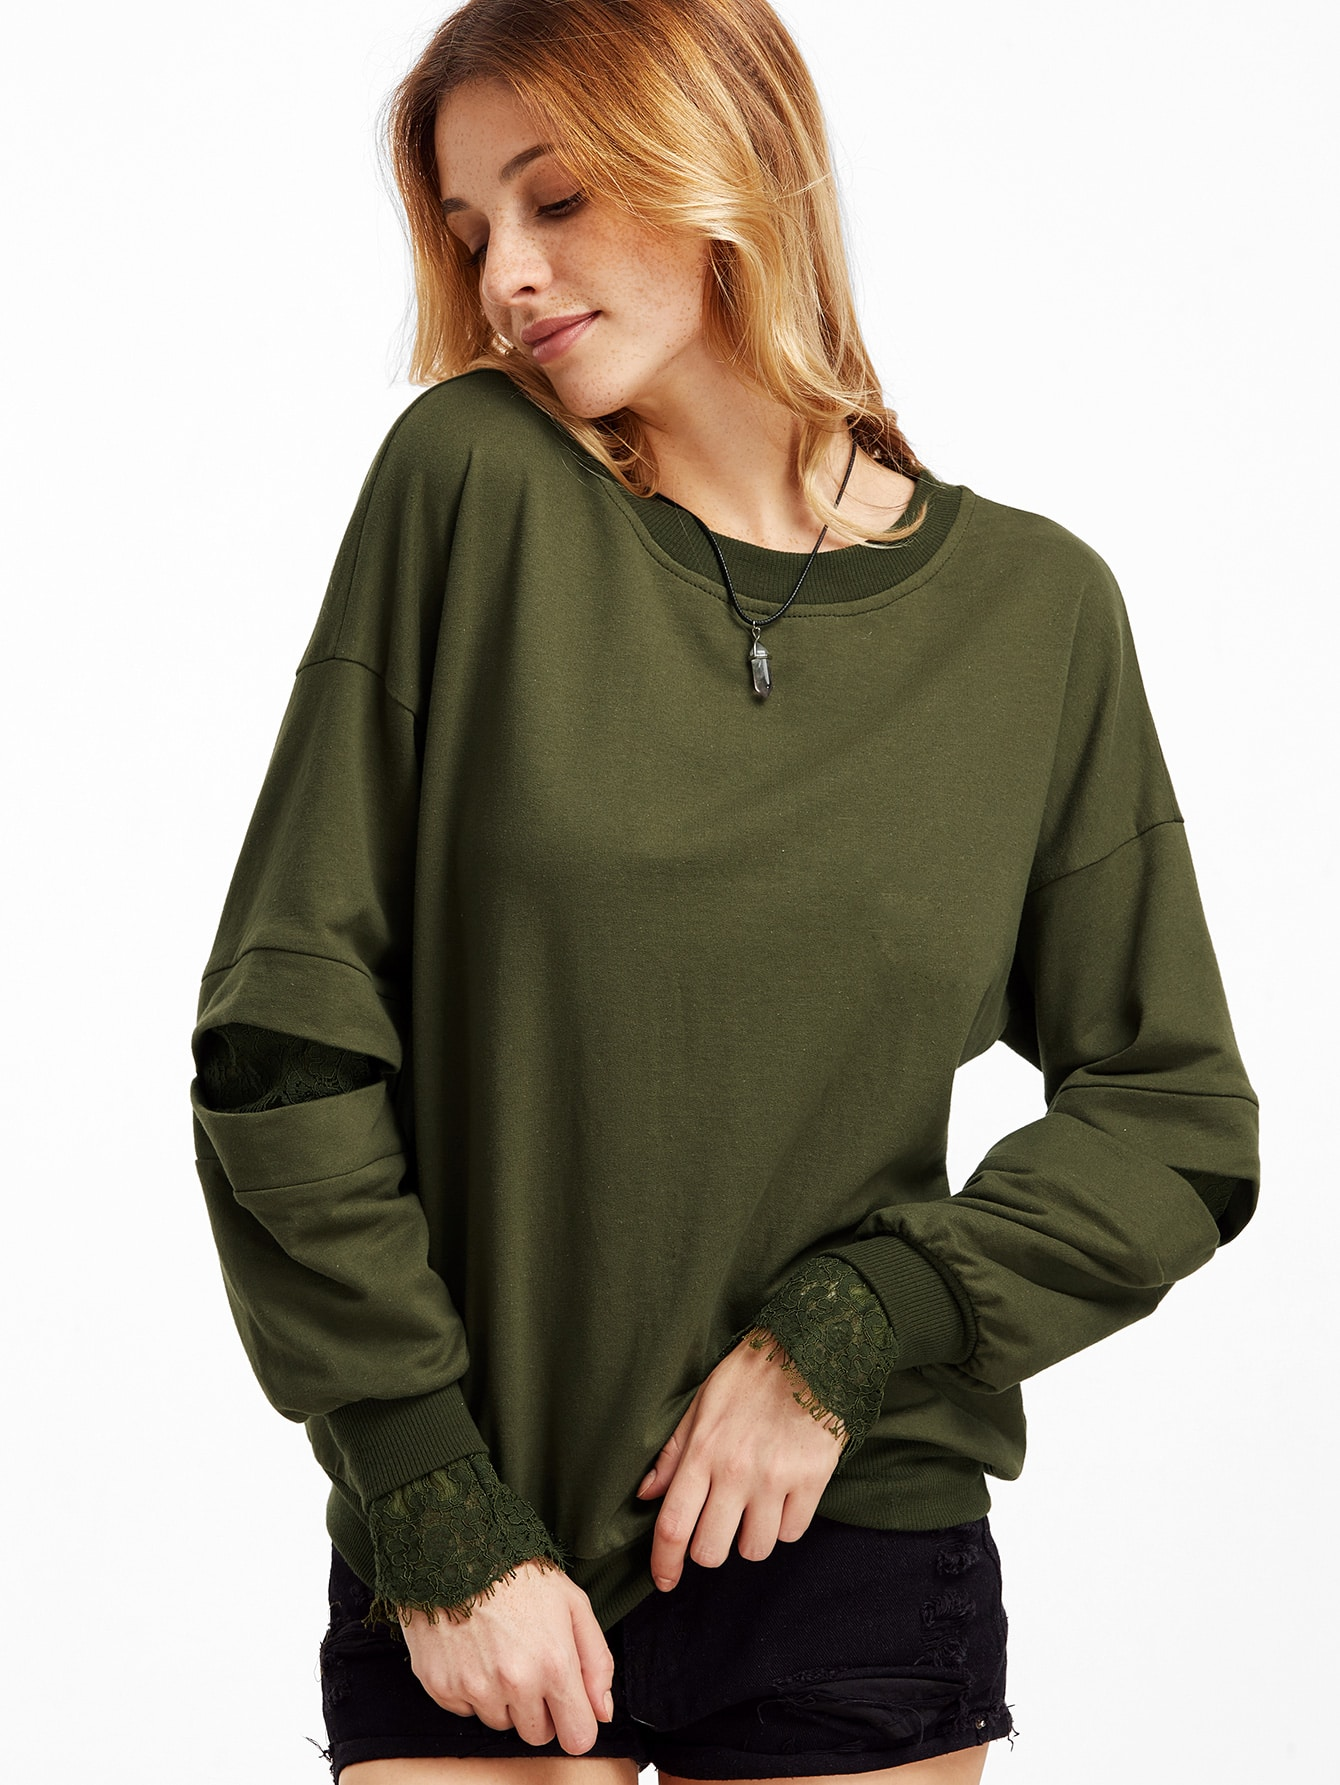 Army Green Lace Lined Open Sleeve SweatshirtArmy Green Lace Lined Open Sleeve Sweatshirt<br><br>color: Green<br>size: XS